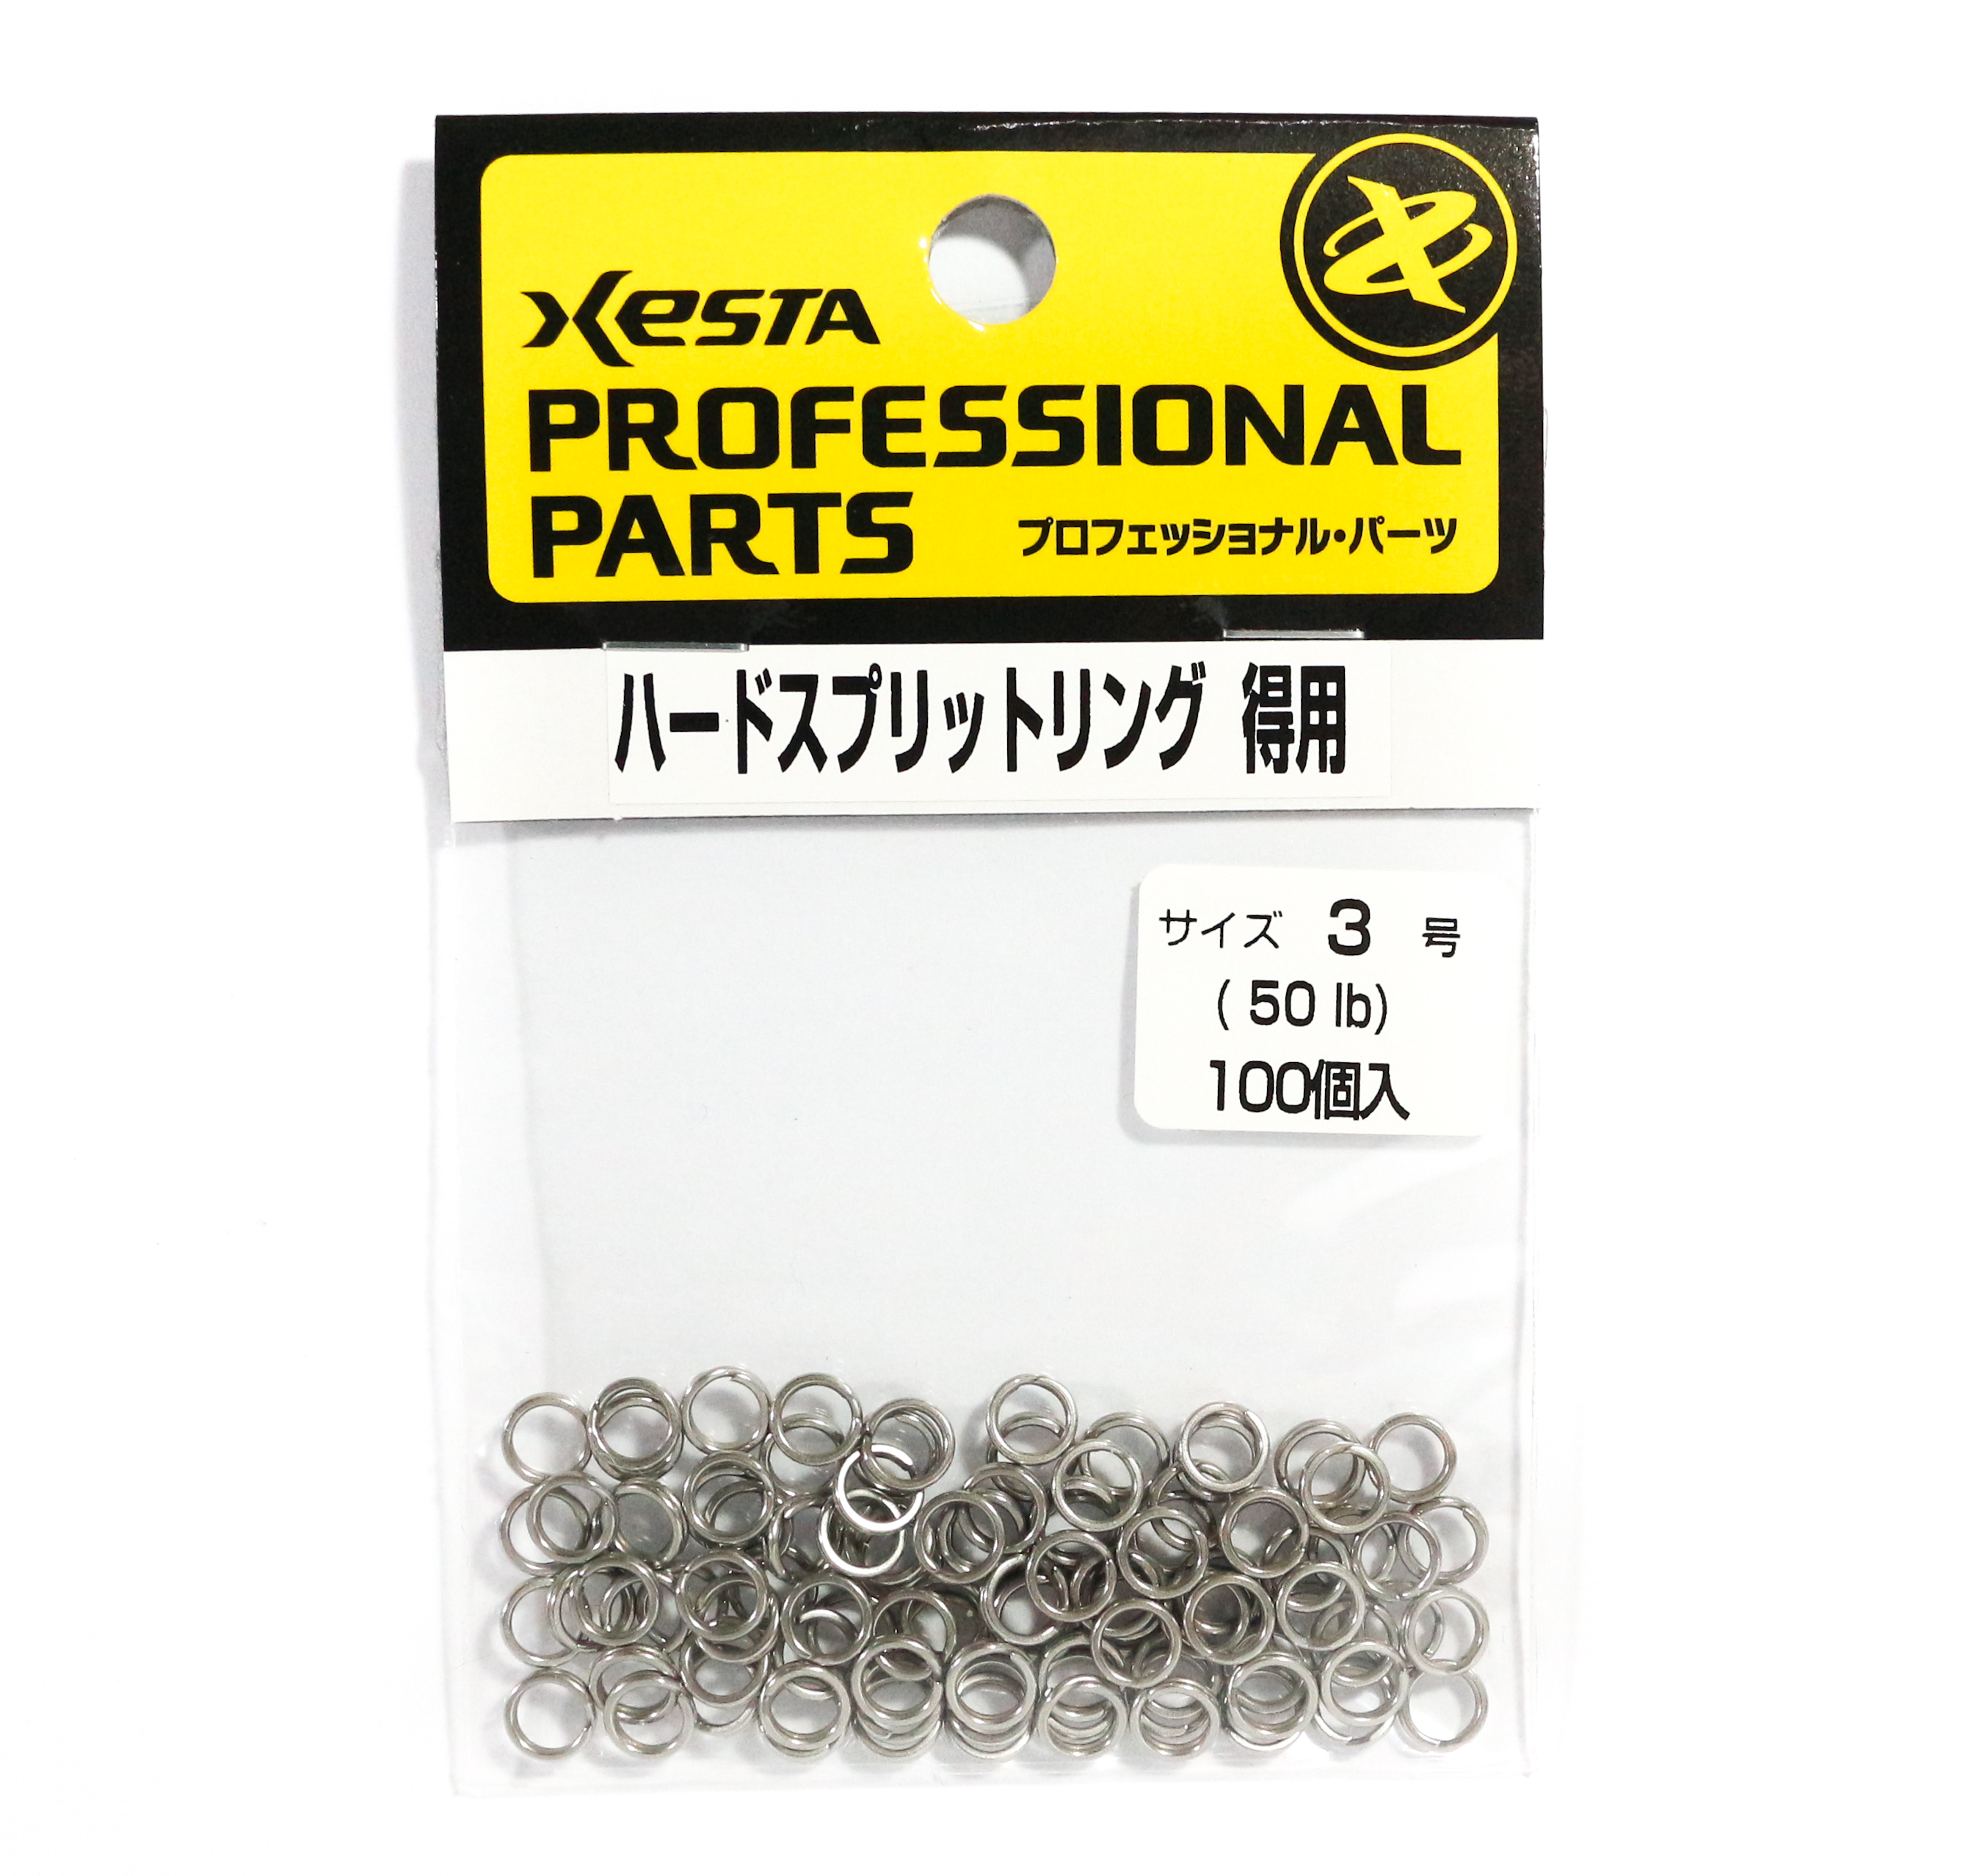 Xesta Hard Split Rings Value Pack Yellow Package Size 3, 100 pieces (7265)